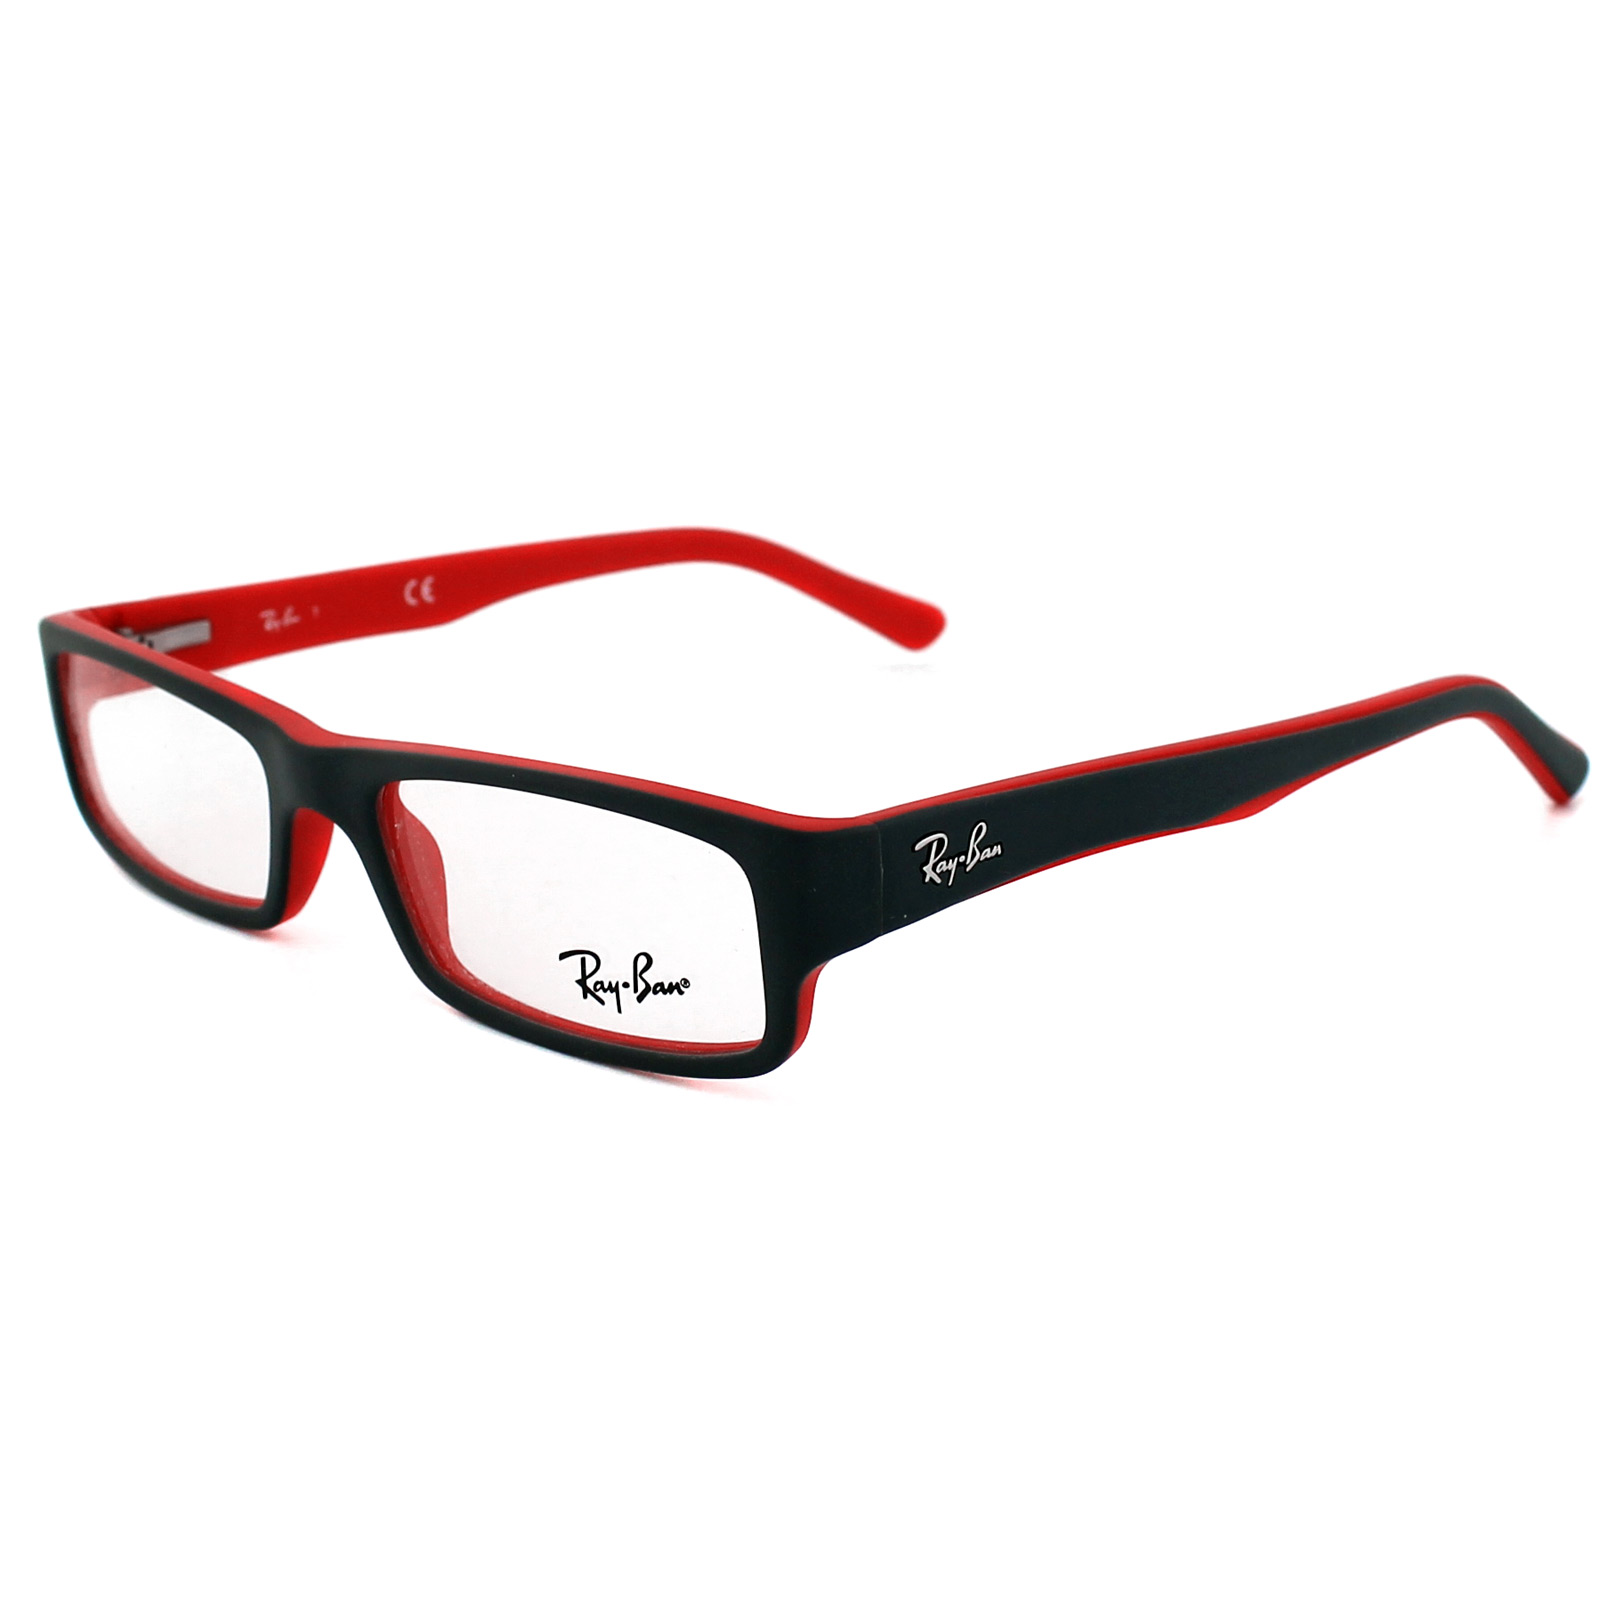 Ray Ban Small Frame Glasses : Ray-Ban Glasses Frames 5246 5225 Top Grey on Matt Red eBay